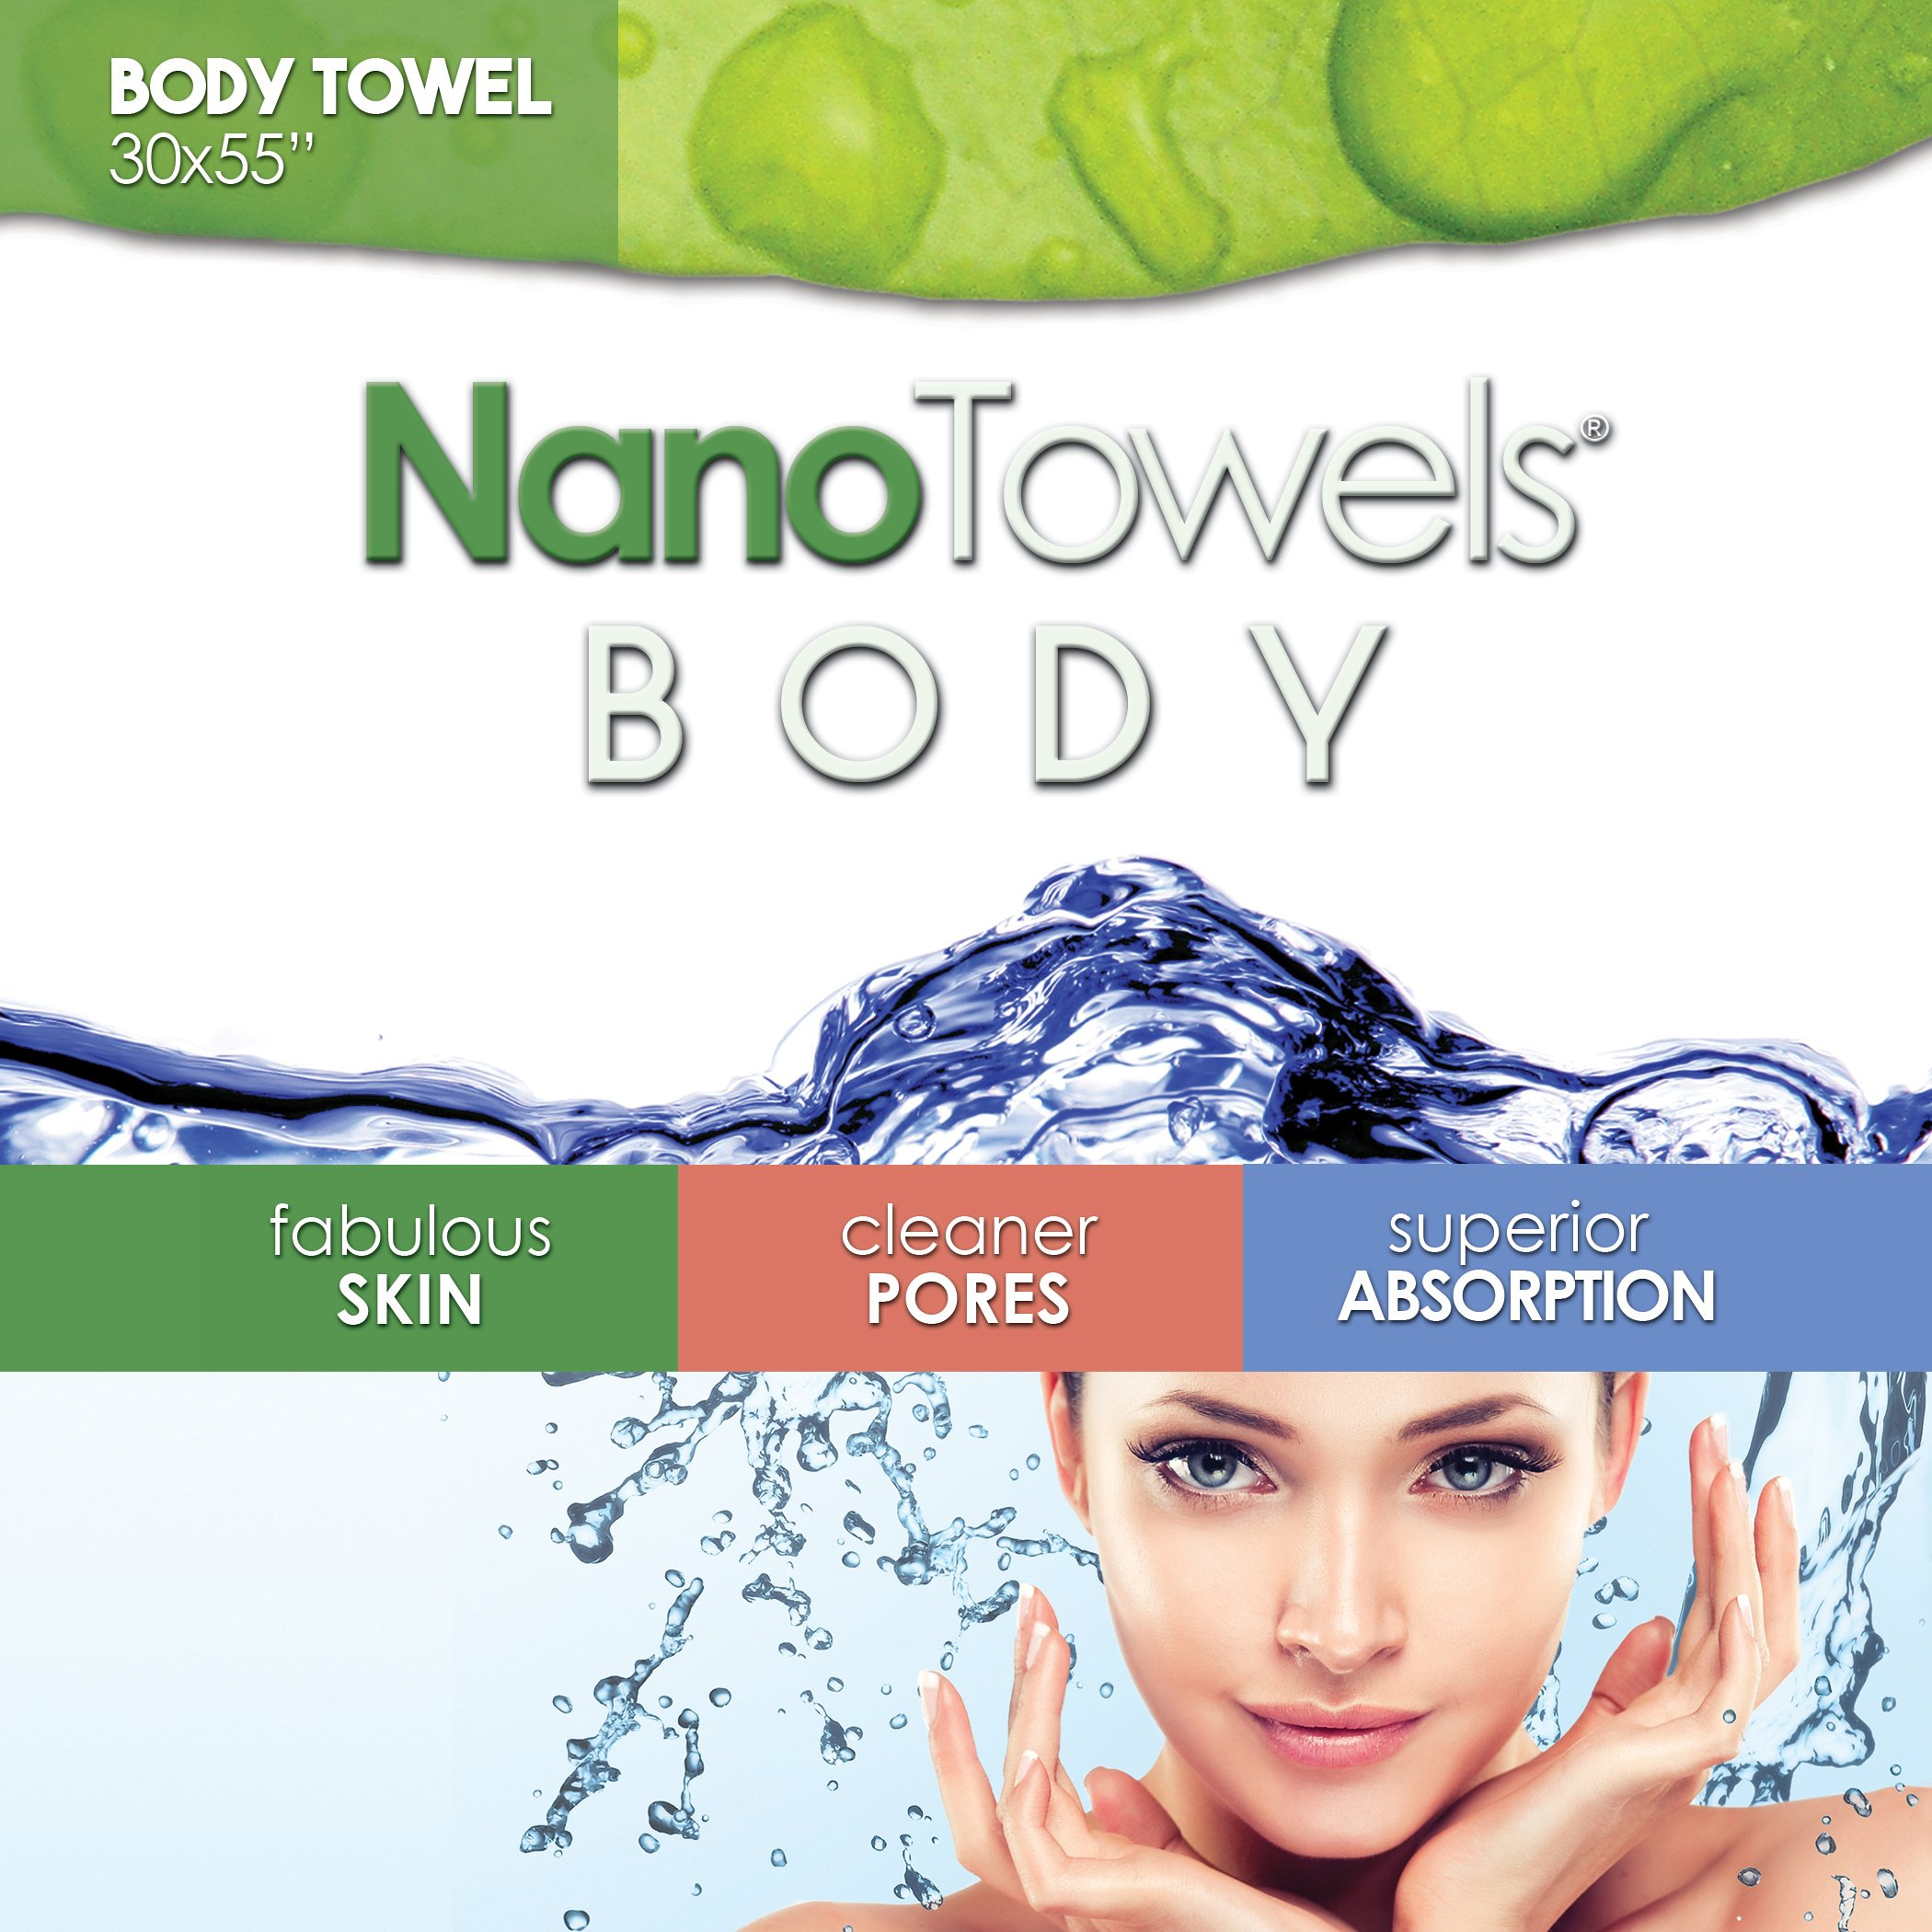 Nano Towels Body Bath & Shower Towel. Huge & Super Absorbent. Wipes Away Dirt, Oil and Cosmetics. Use As Your Sports, Travel, Fitness, Kids, Beauty, Spa Or Salon Luxury Towel. 30 x 55''. by Life Miracle (Image #4)